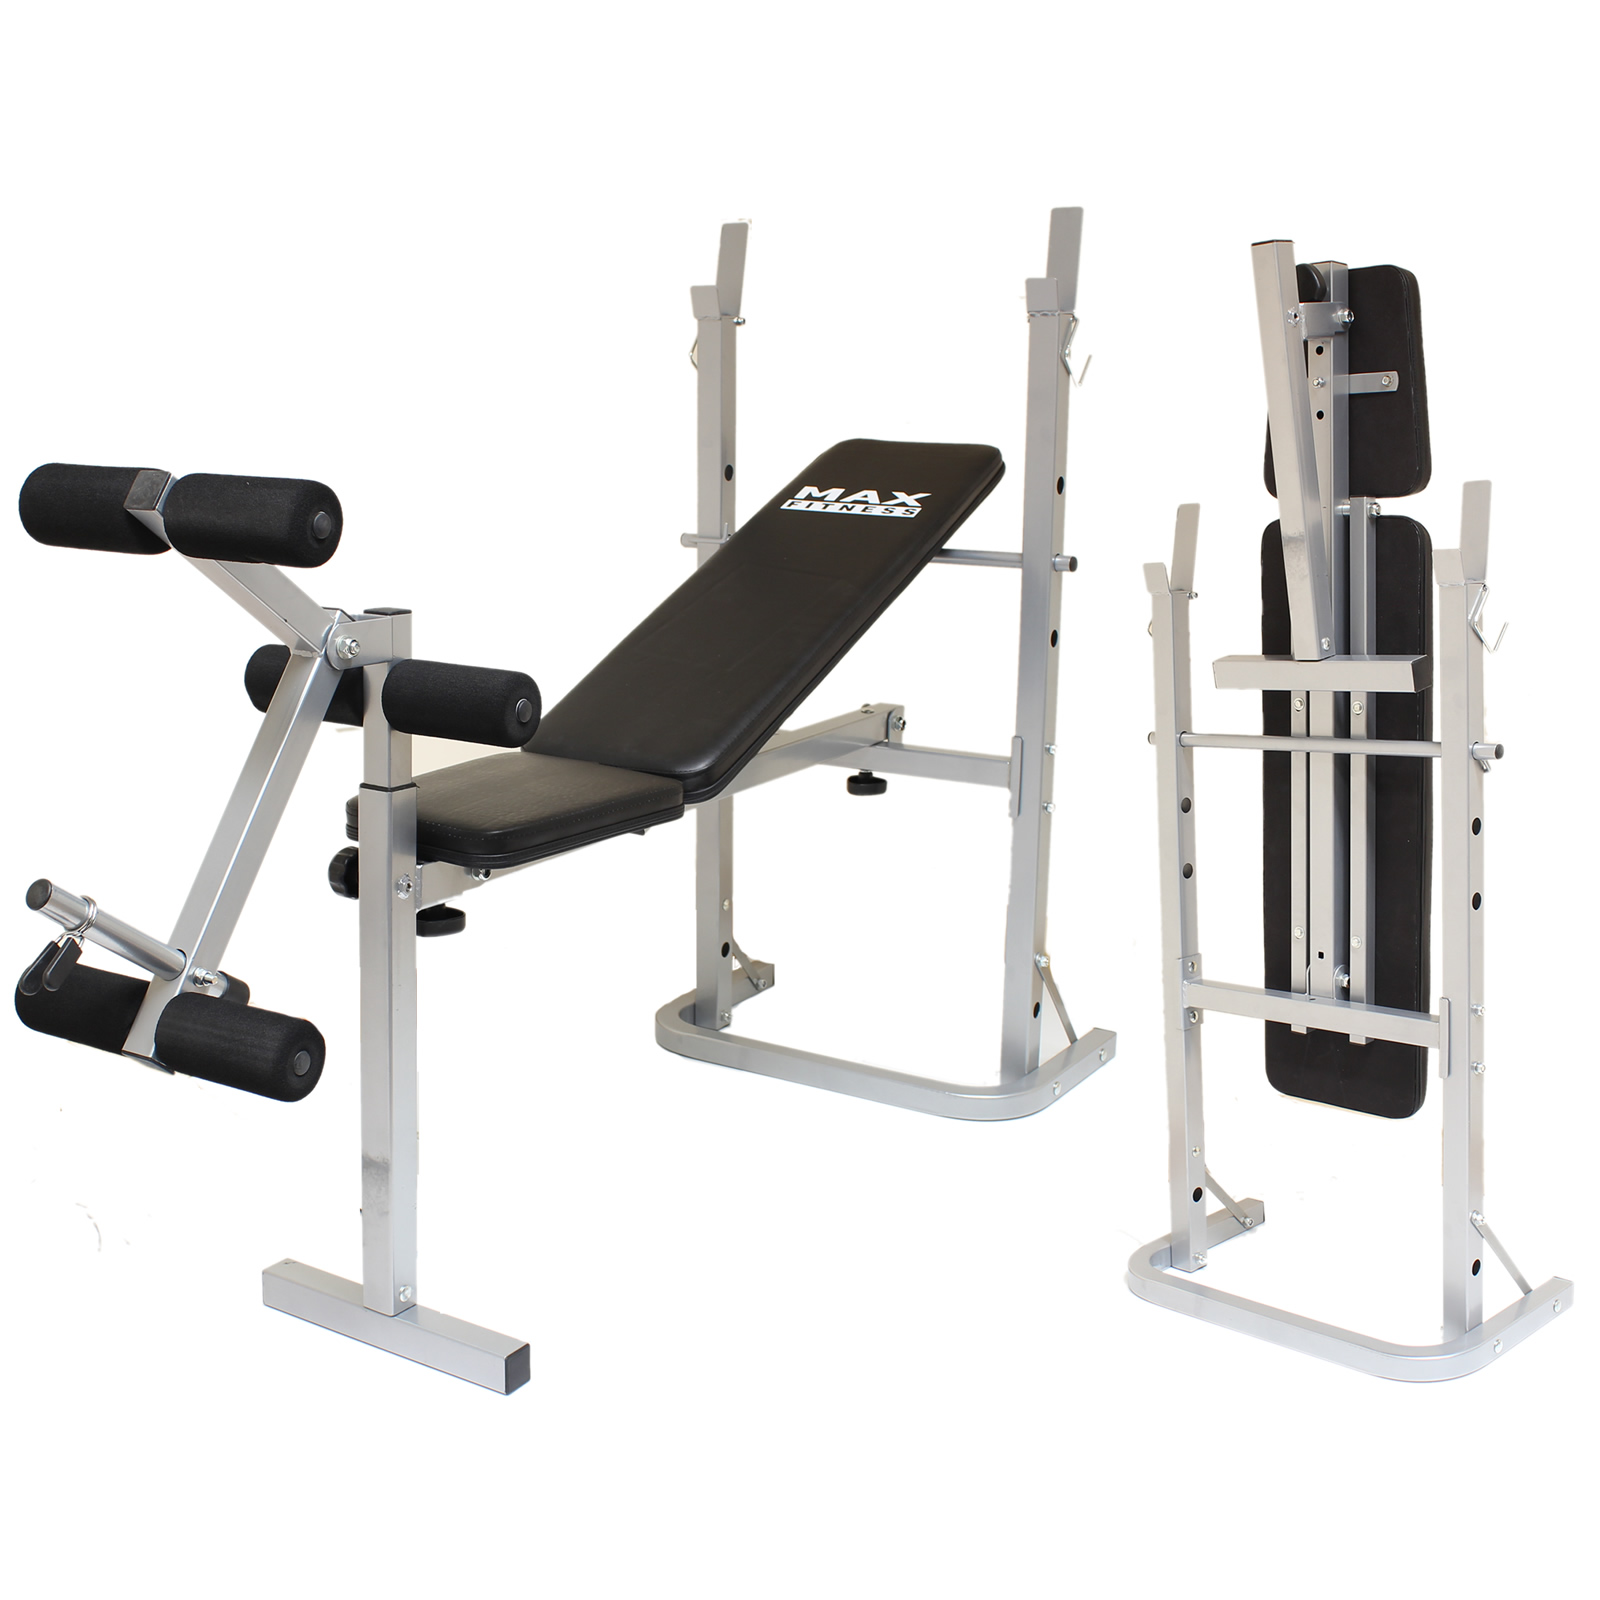 Max fitness folding weight bench home gym exercise lift Bench weights